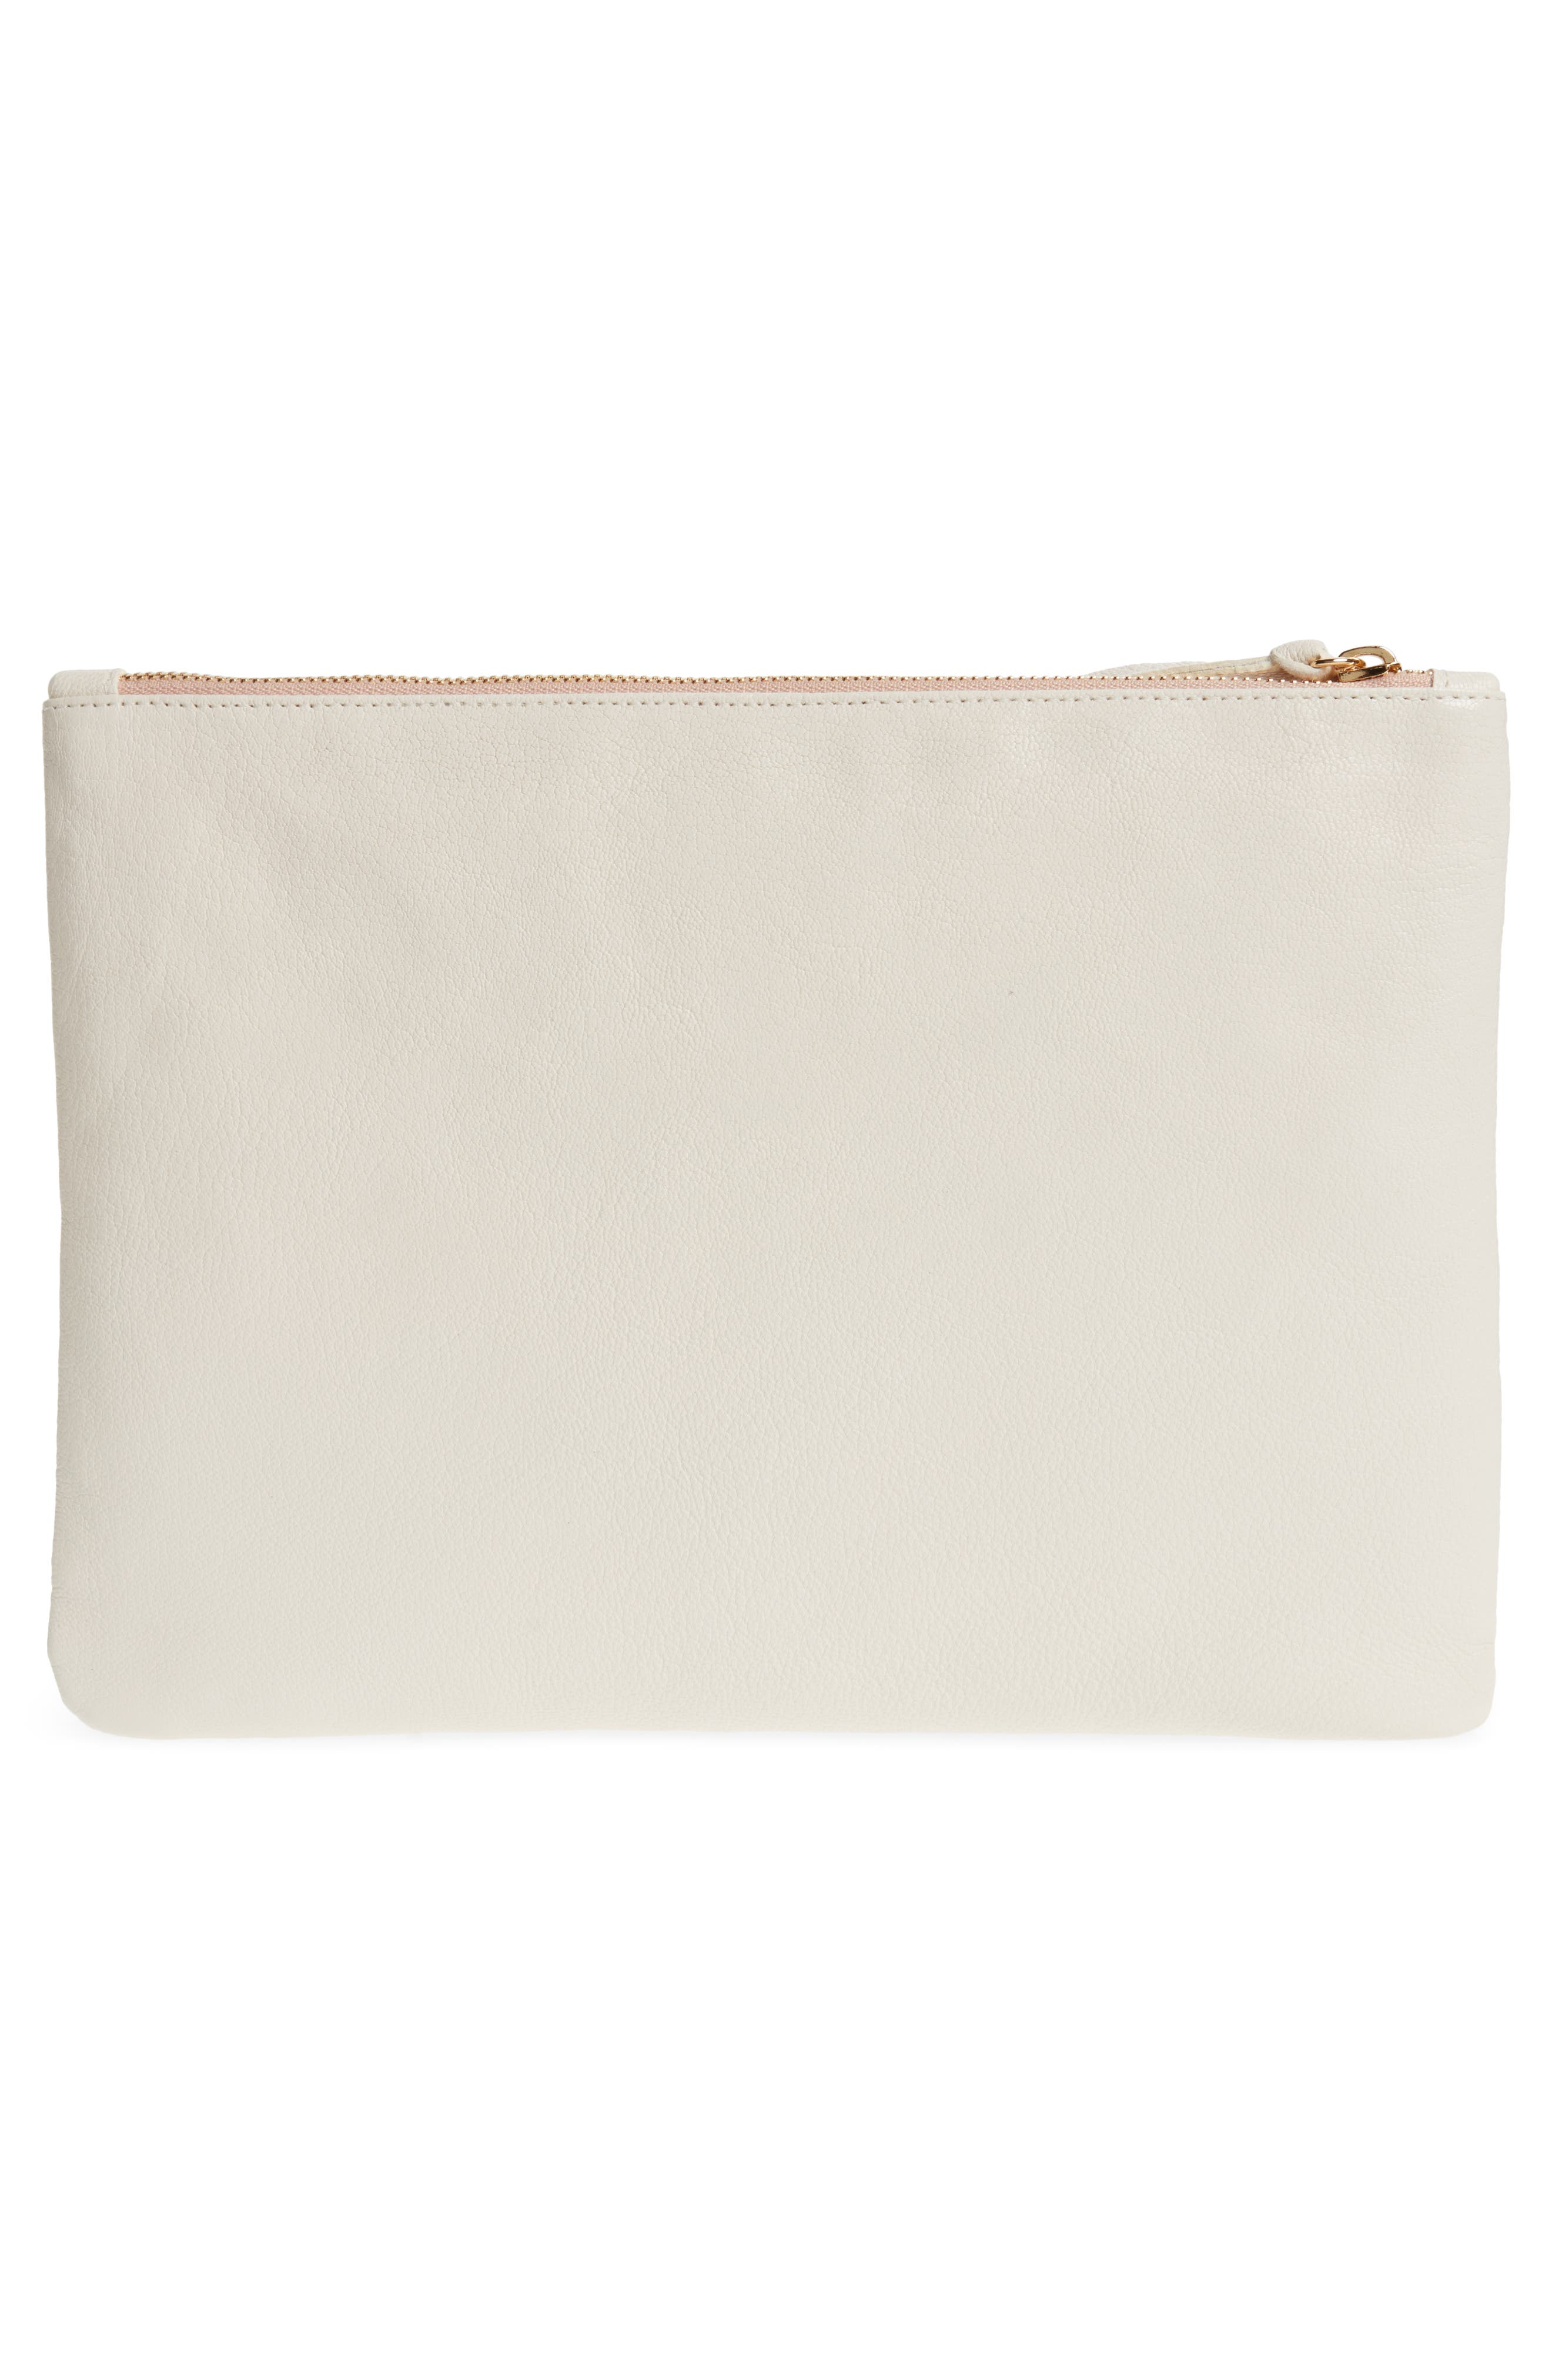 Eyes Printed Nappa Leather Clutch,                             Alternate thumbnail 3, color,                             Beaded White With Black Eyes